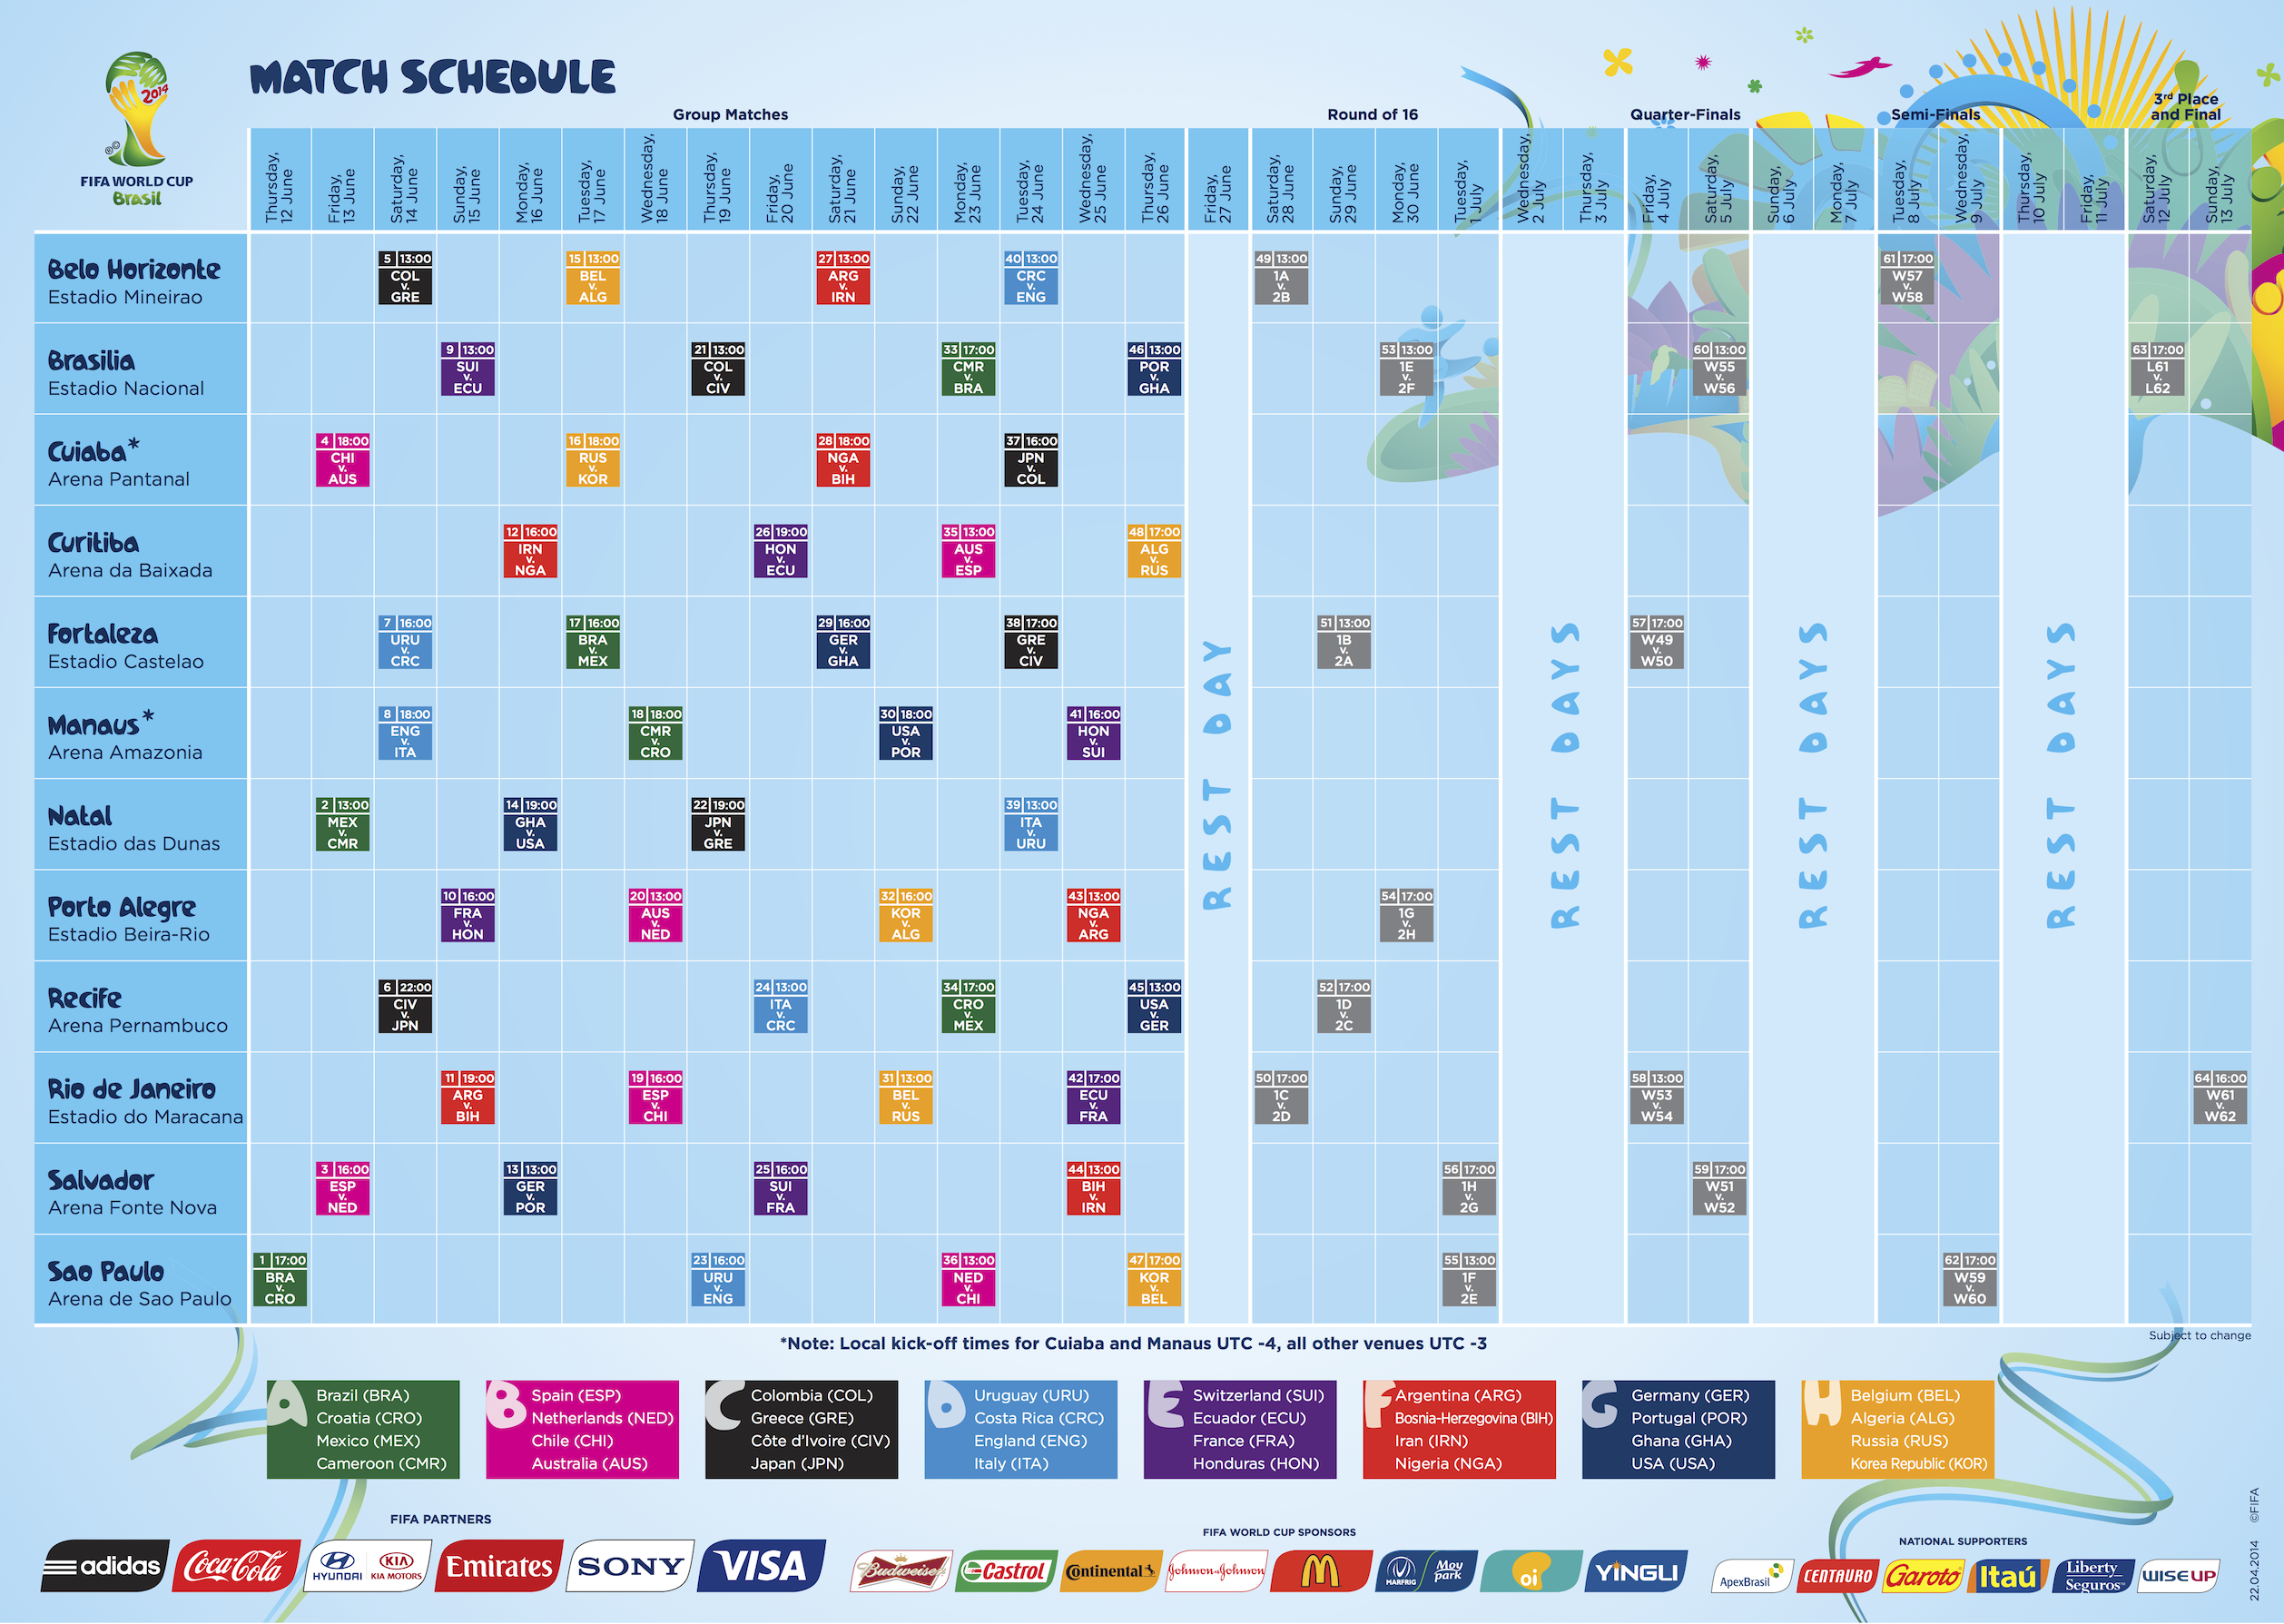 Pin By Rolf Neumann On Istats Infographics World Cup 2014 World Cup Schedule Fifa 2014 World Cup